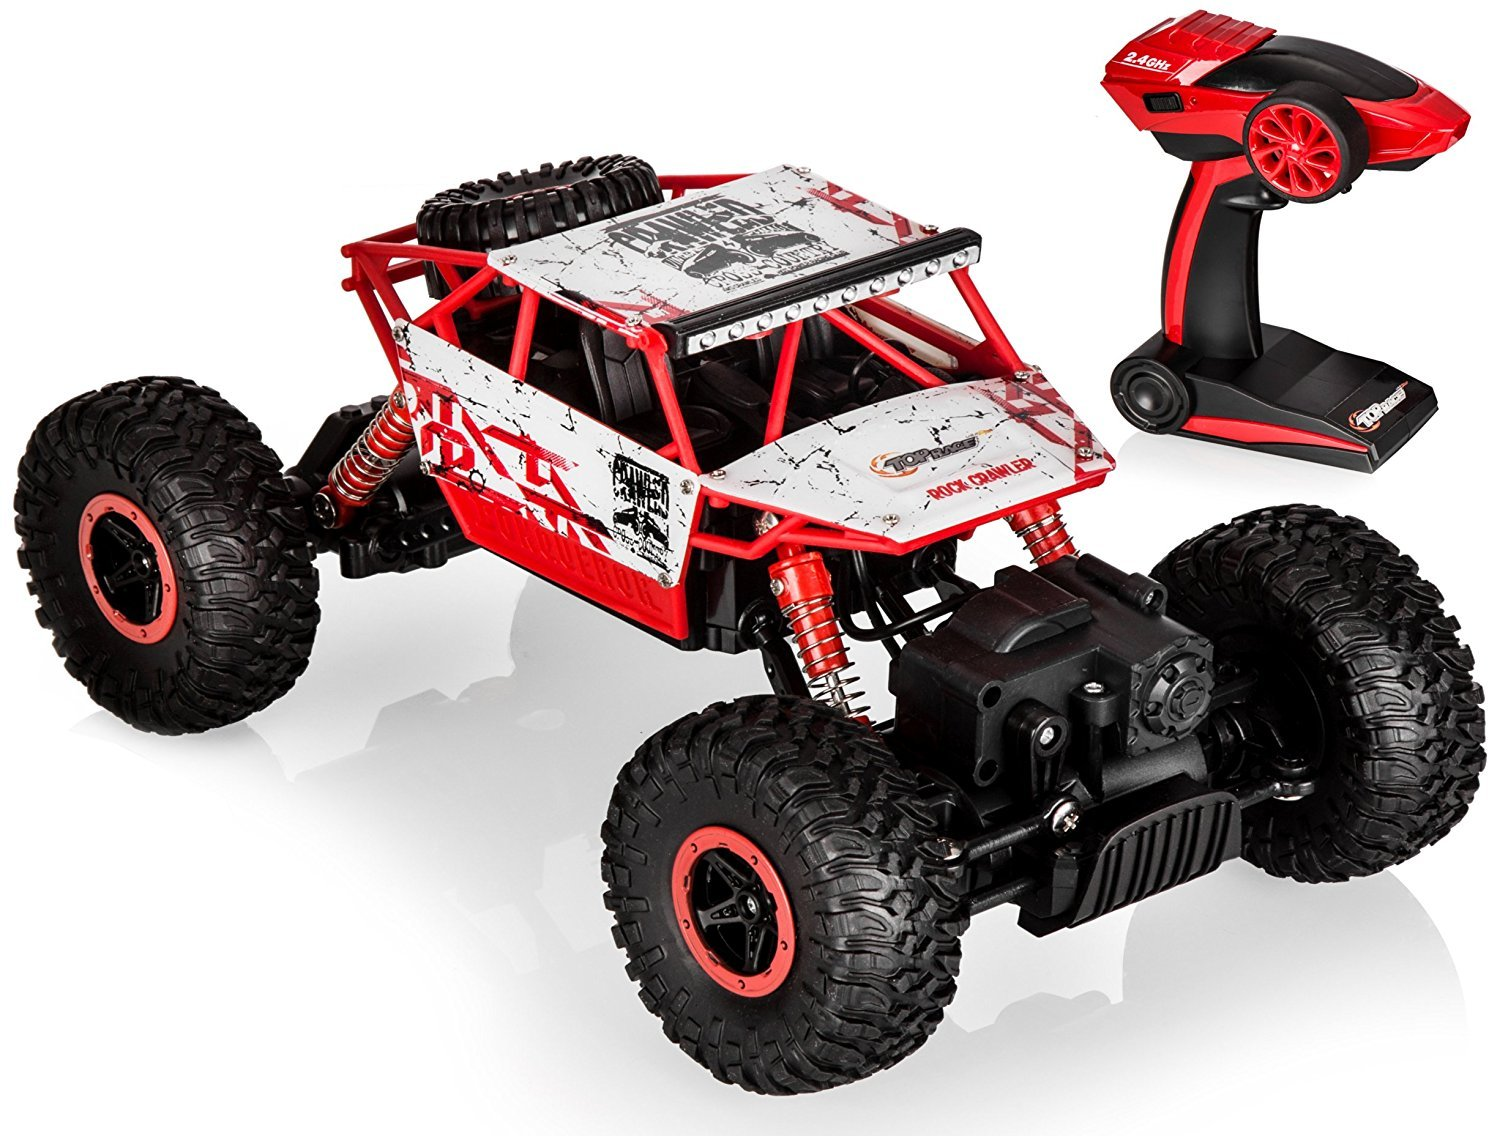 Top 10 Best RC Cars for Kids Reviews in 2020 7